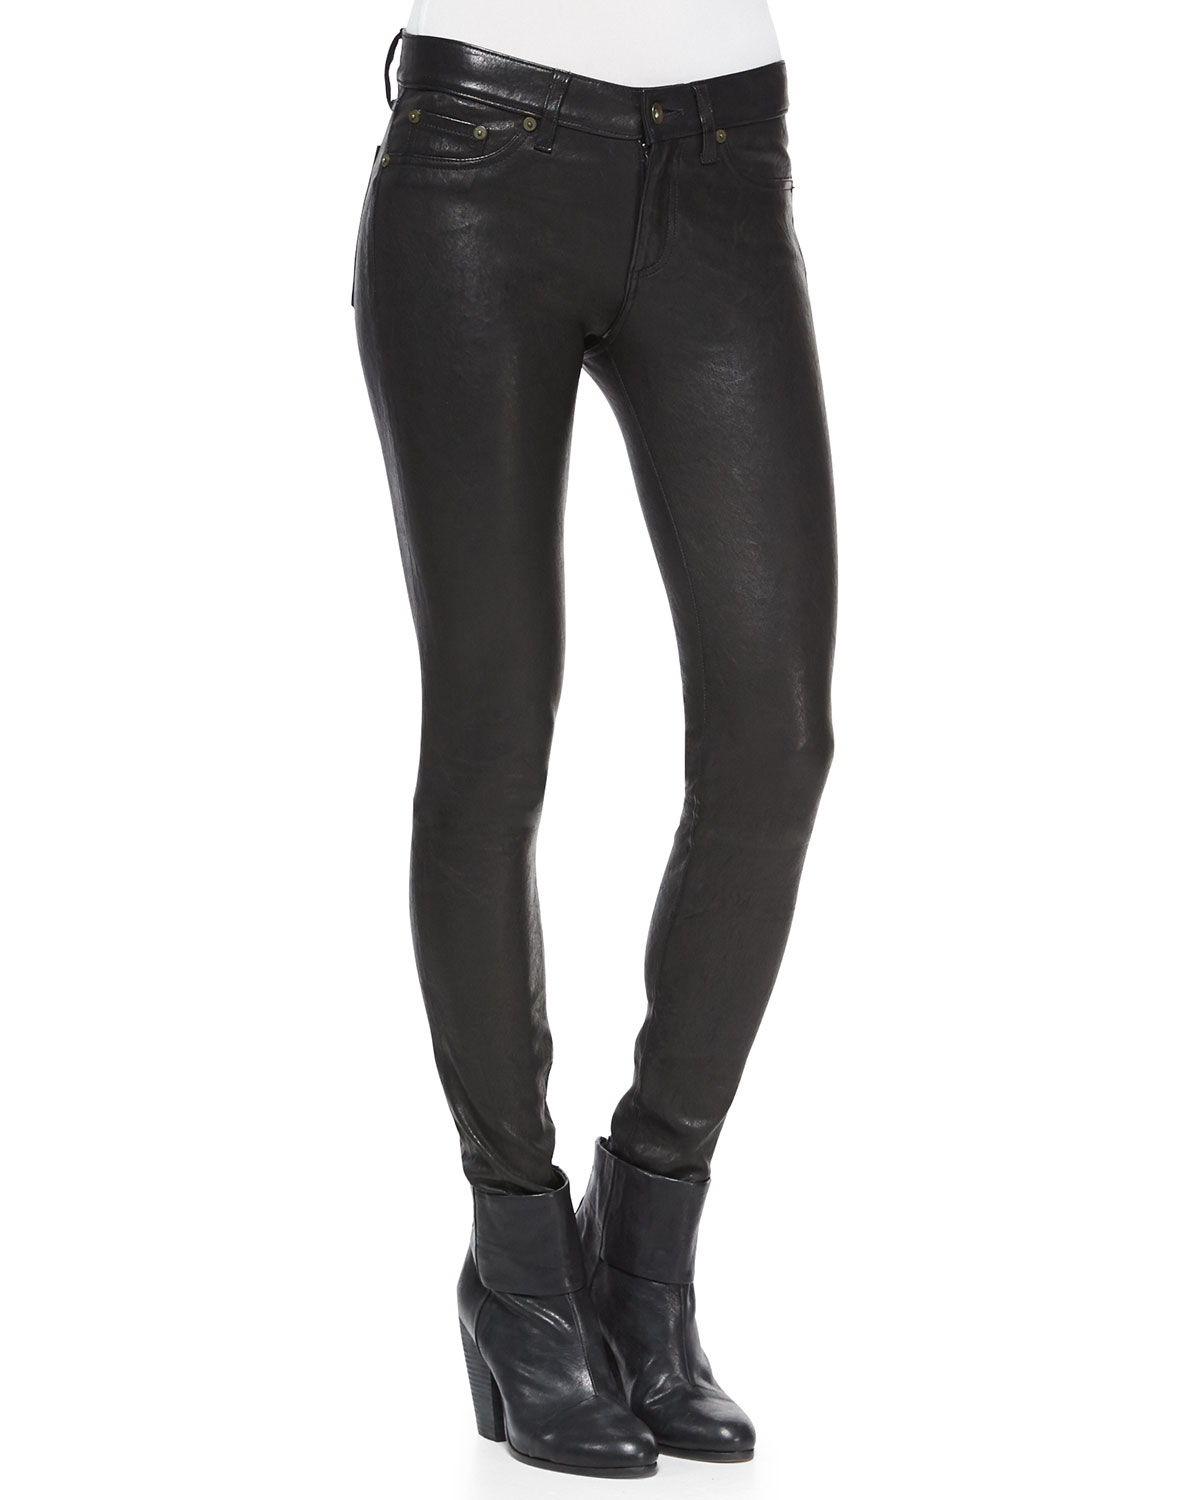 The skinny leather pants